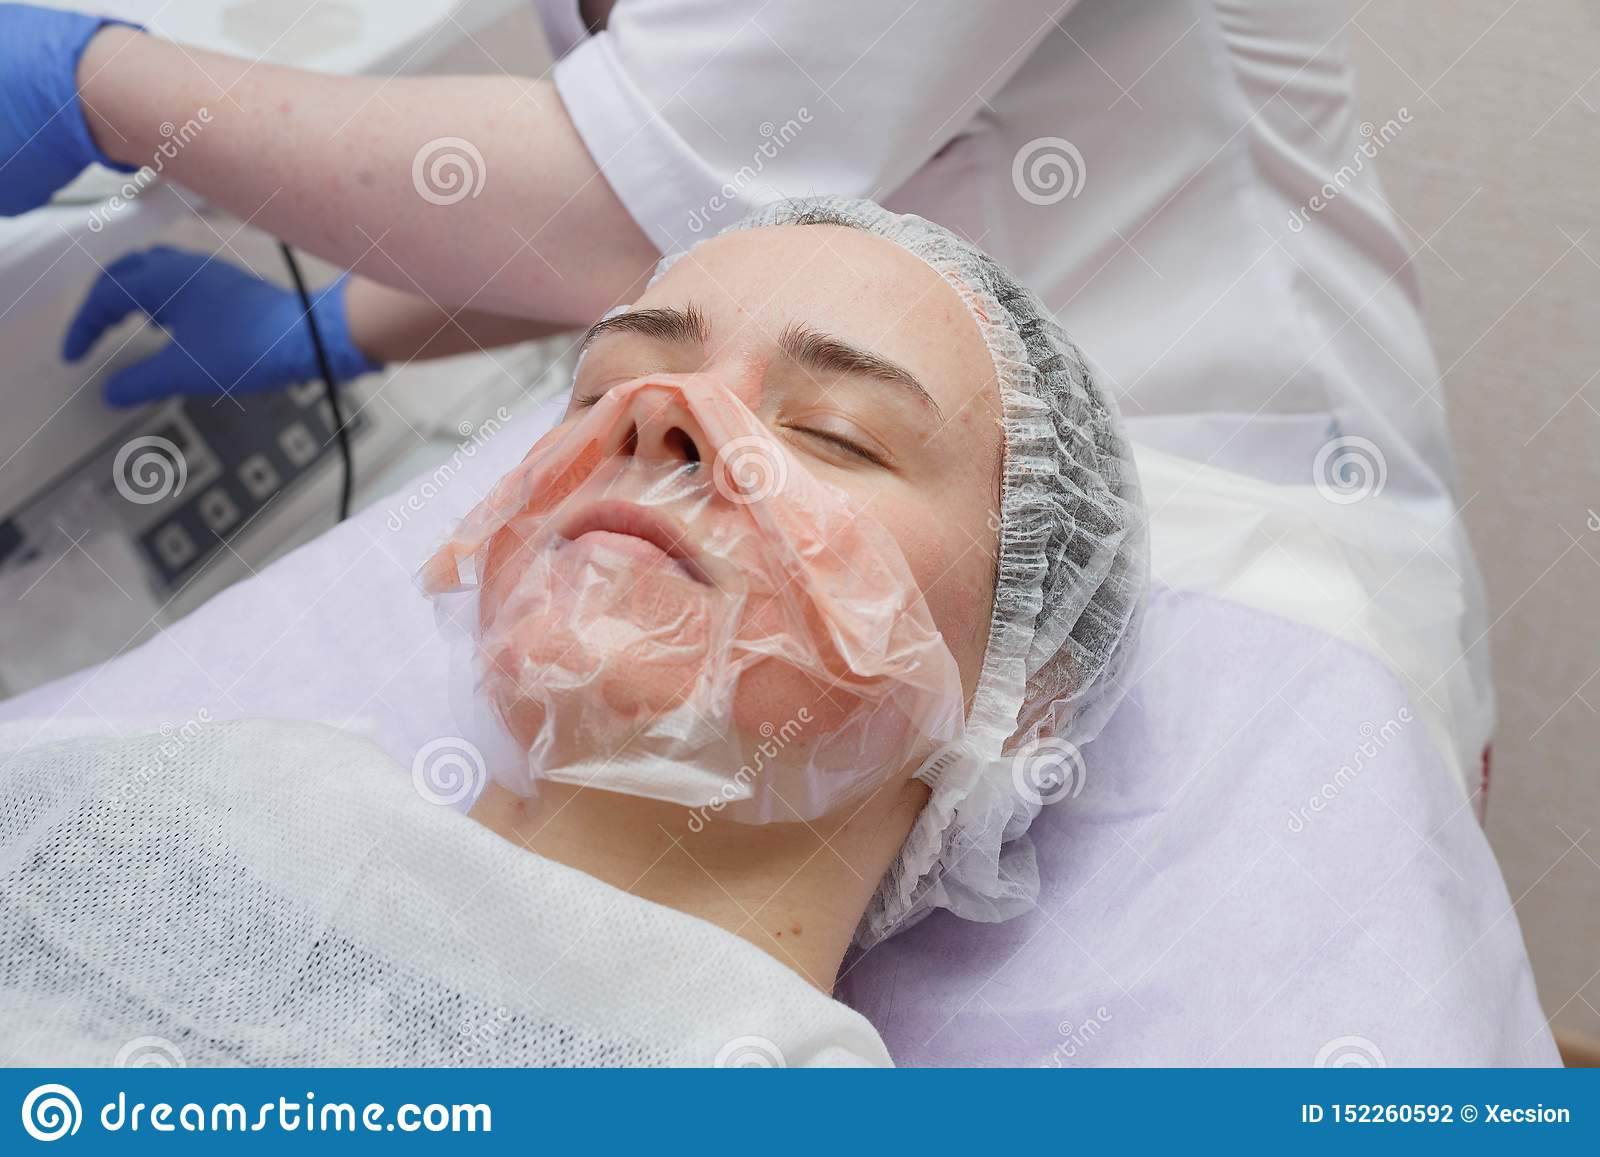 The Girl Is Provided With An Ultrasound Skin Cleaning ...